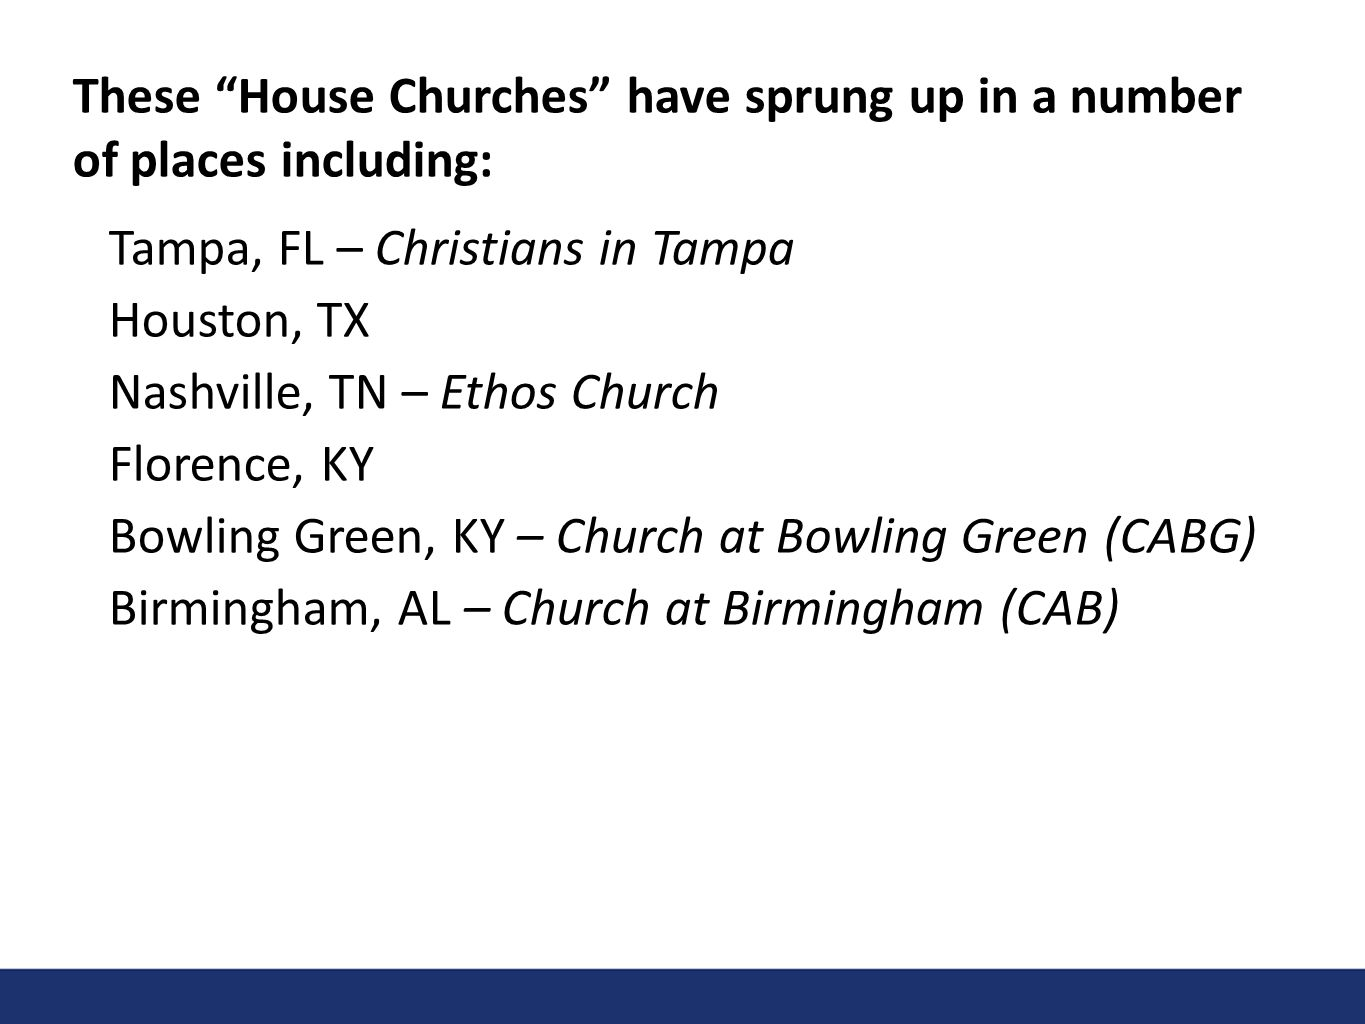 These House Churches have sprung up in a number of places including: Tampa, FL – Christians in Tampa Houston, TX Nashville, TN – Ethos Church Florence